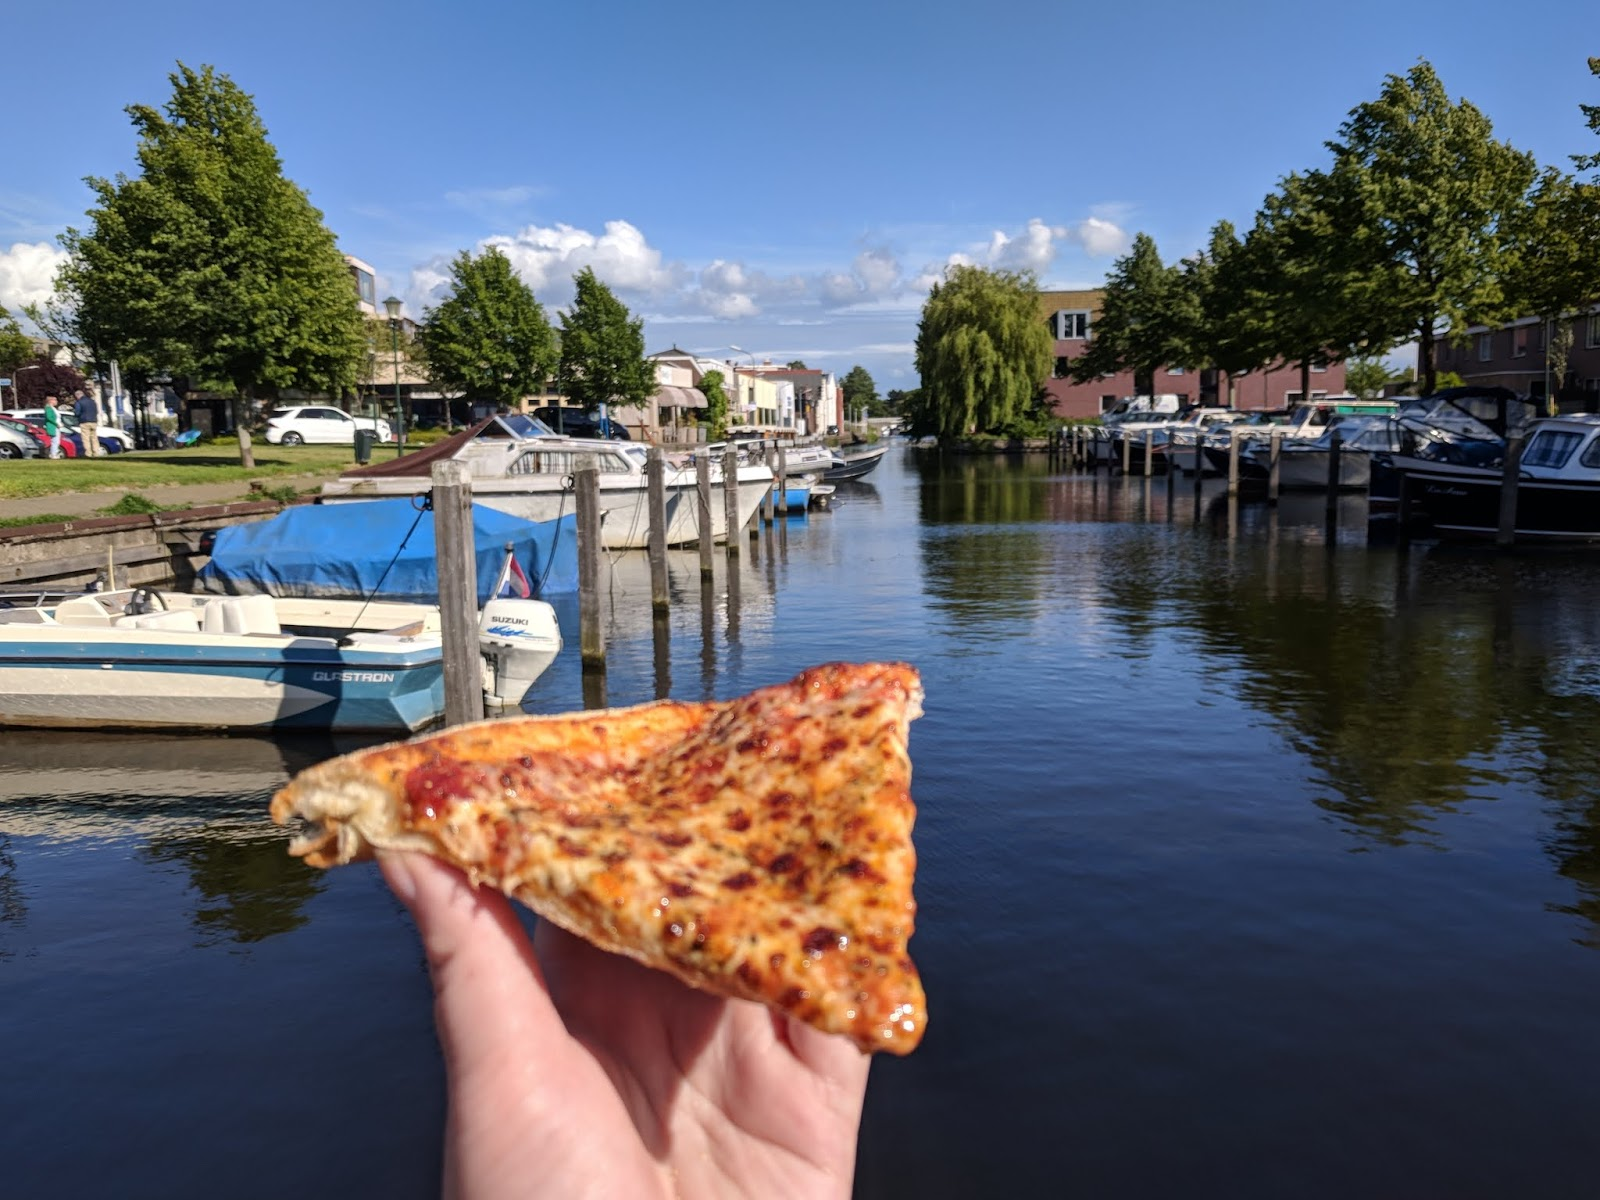 Pizza from Dominoes by the Canal in Wassenaar